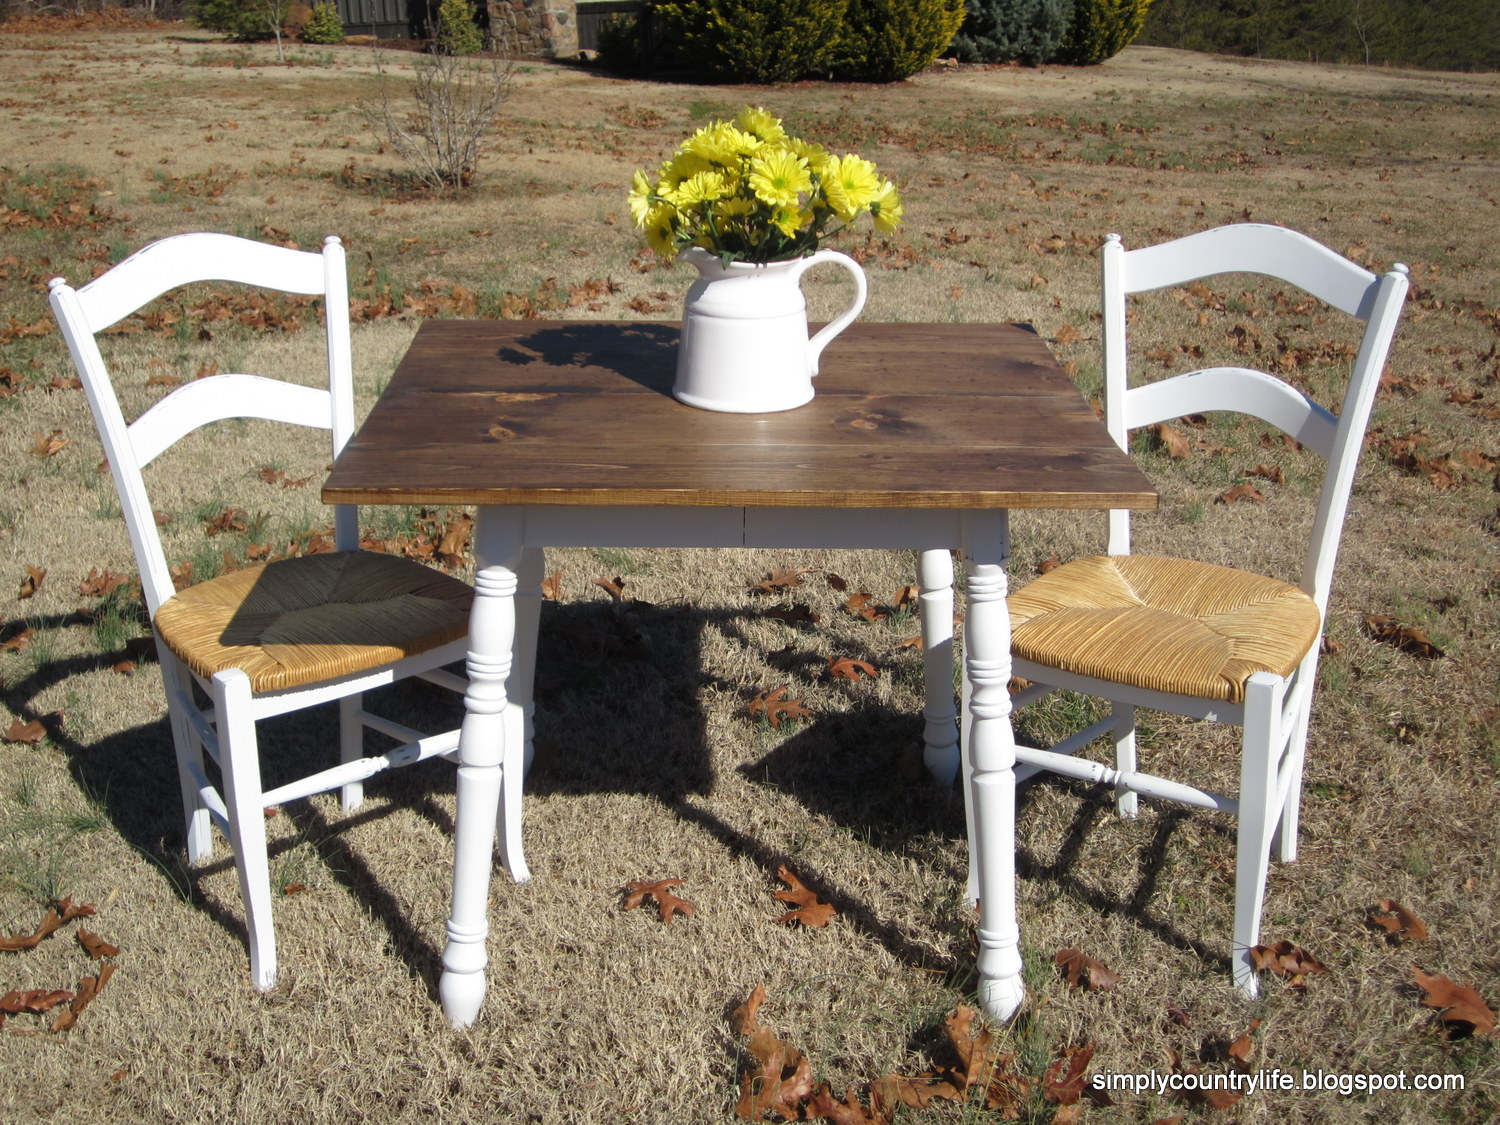 Simply country life thrift store finds turned into kitchen farm table workwithnaturefo